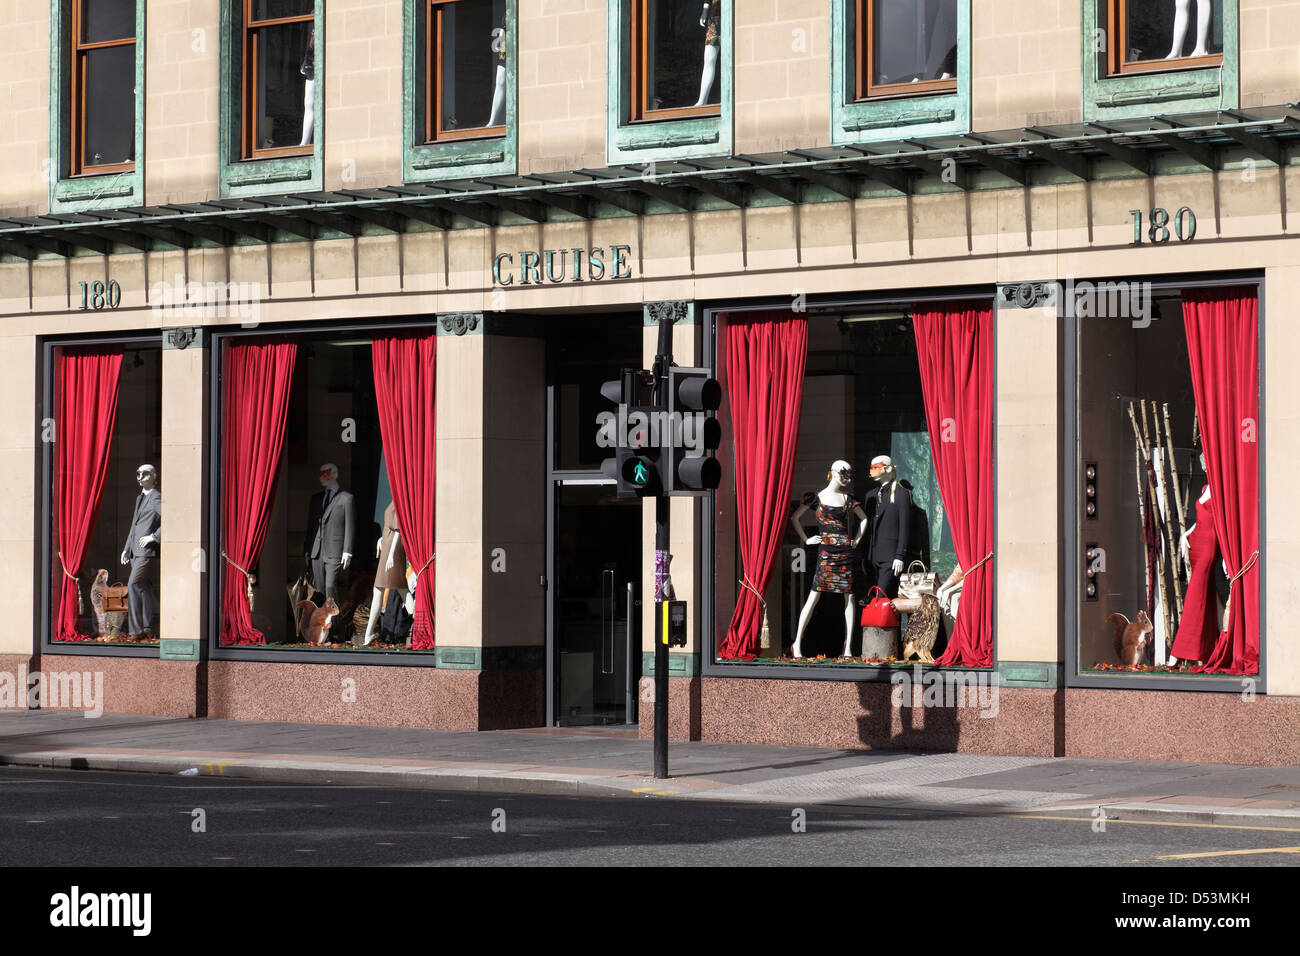 Clothing stores in glasgow